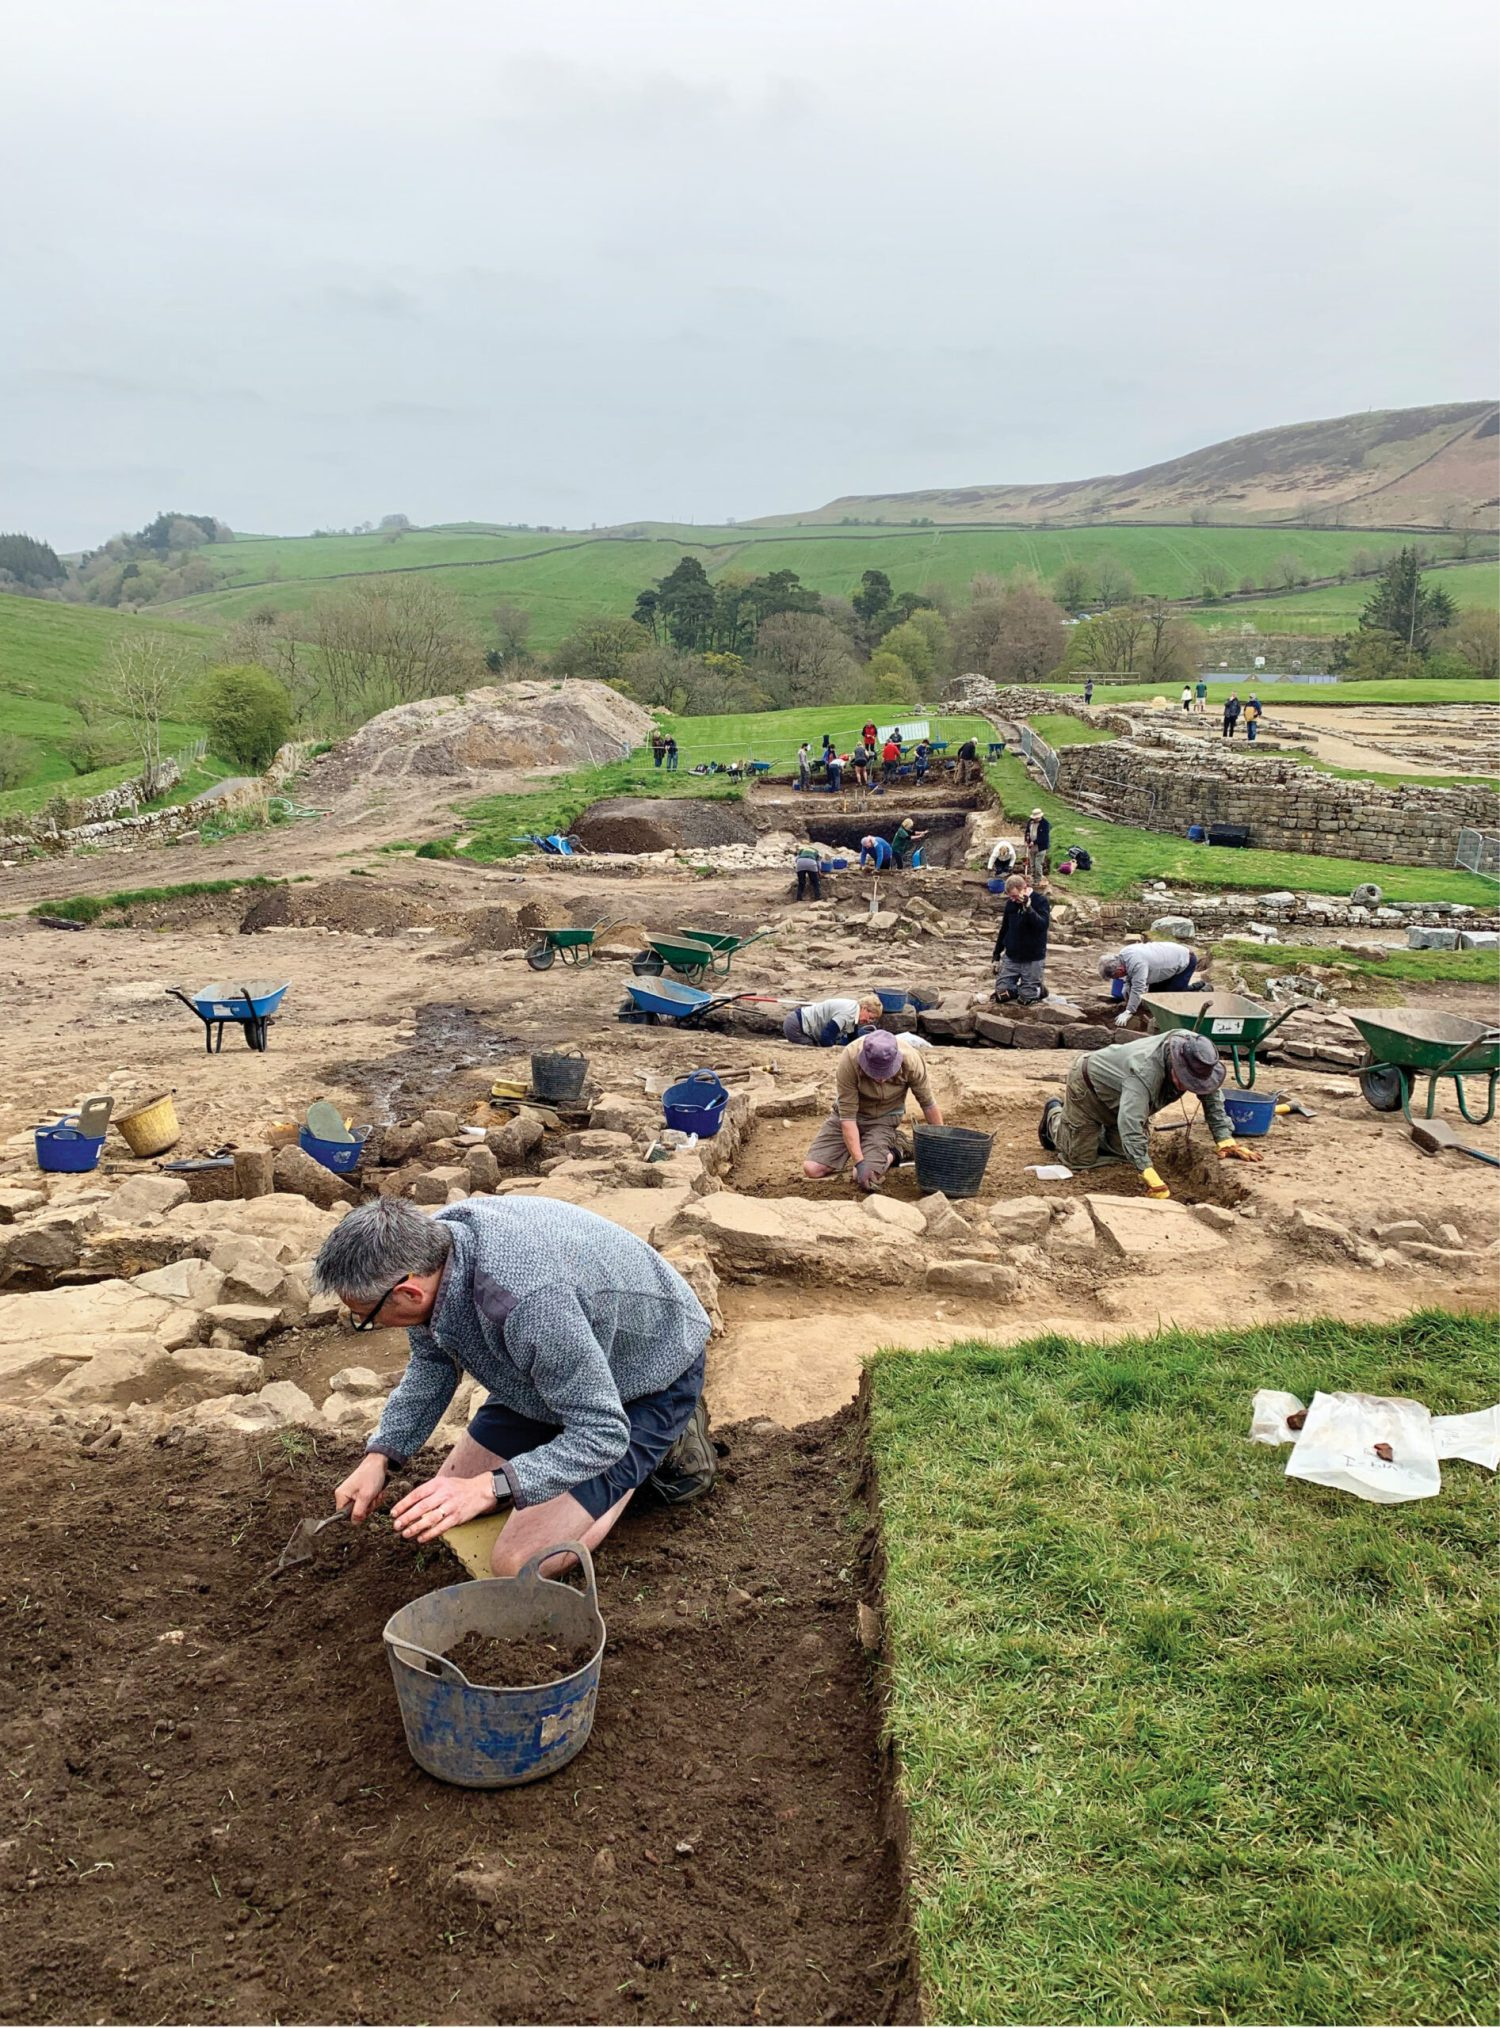 Above Overlooking the excavations at Vindolanda, an auxiliary fort just south of Hadrian's Wall.